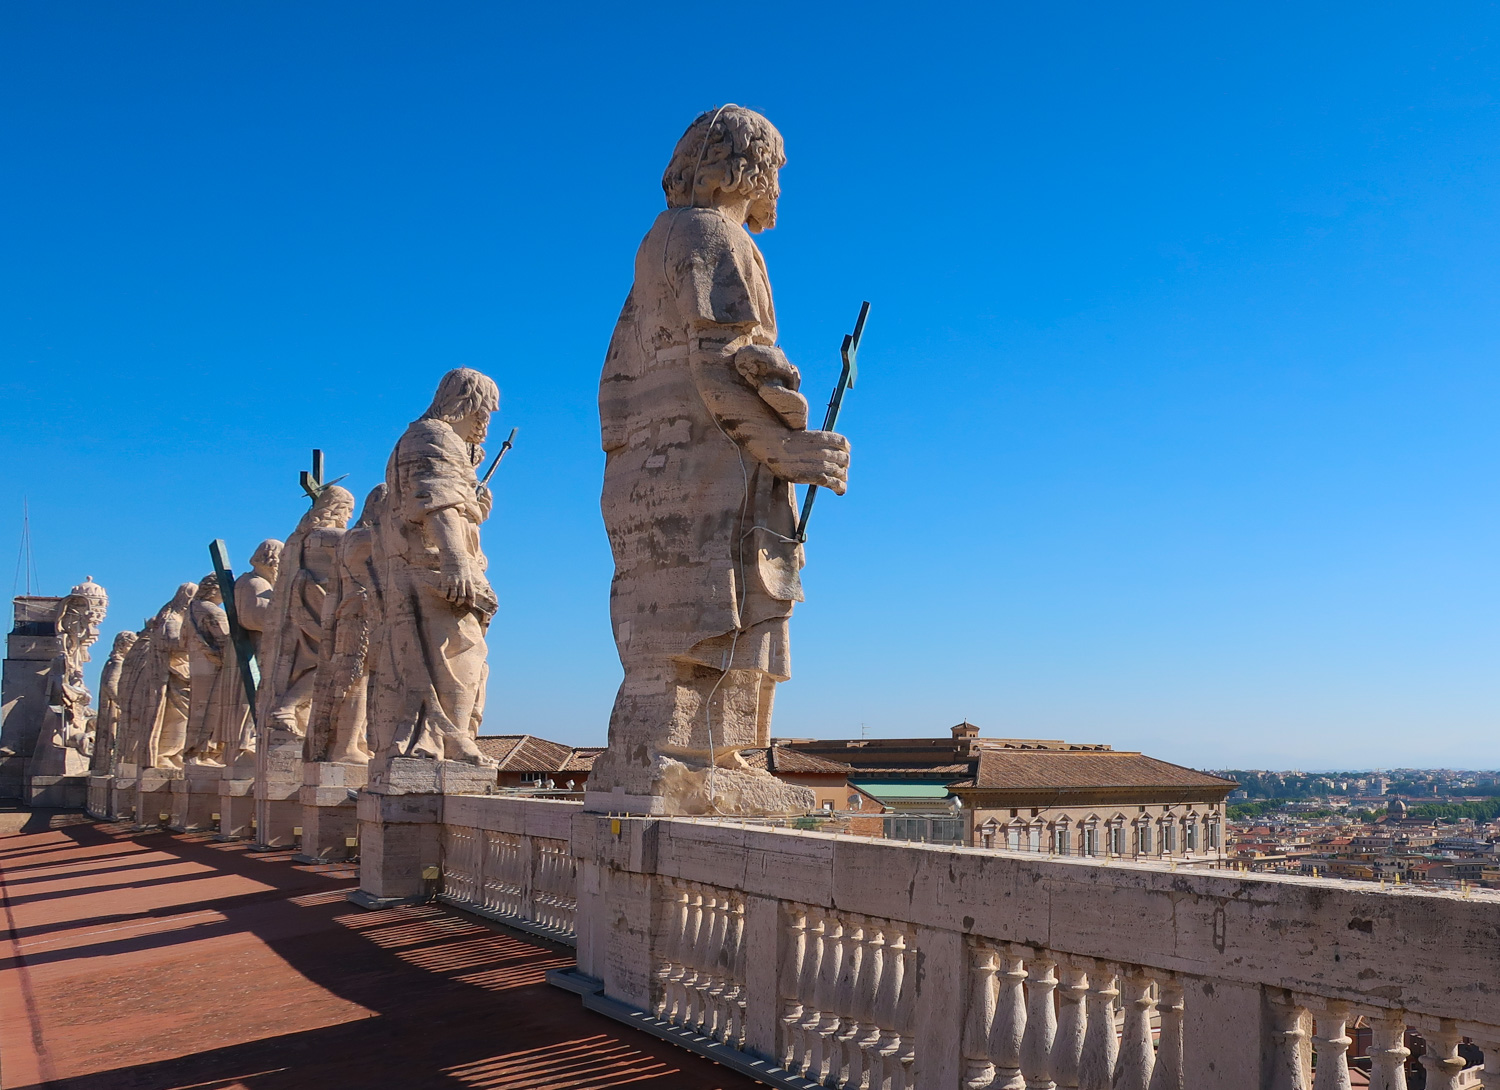 Statues on the Roof of St. Peter's Basilica Rome   Photo: Calvin Wood